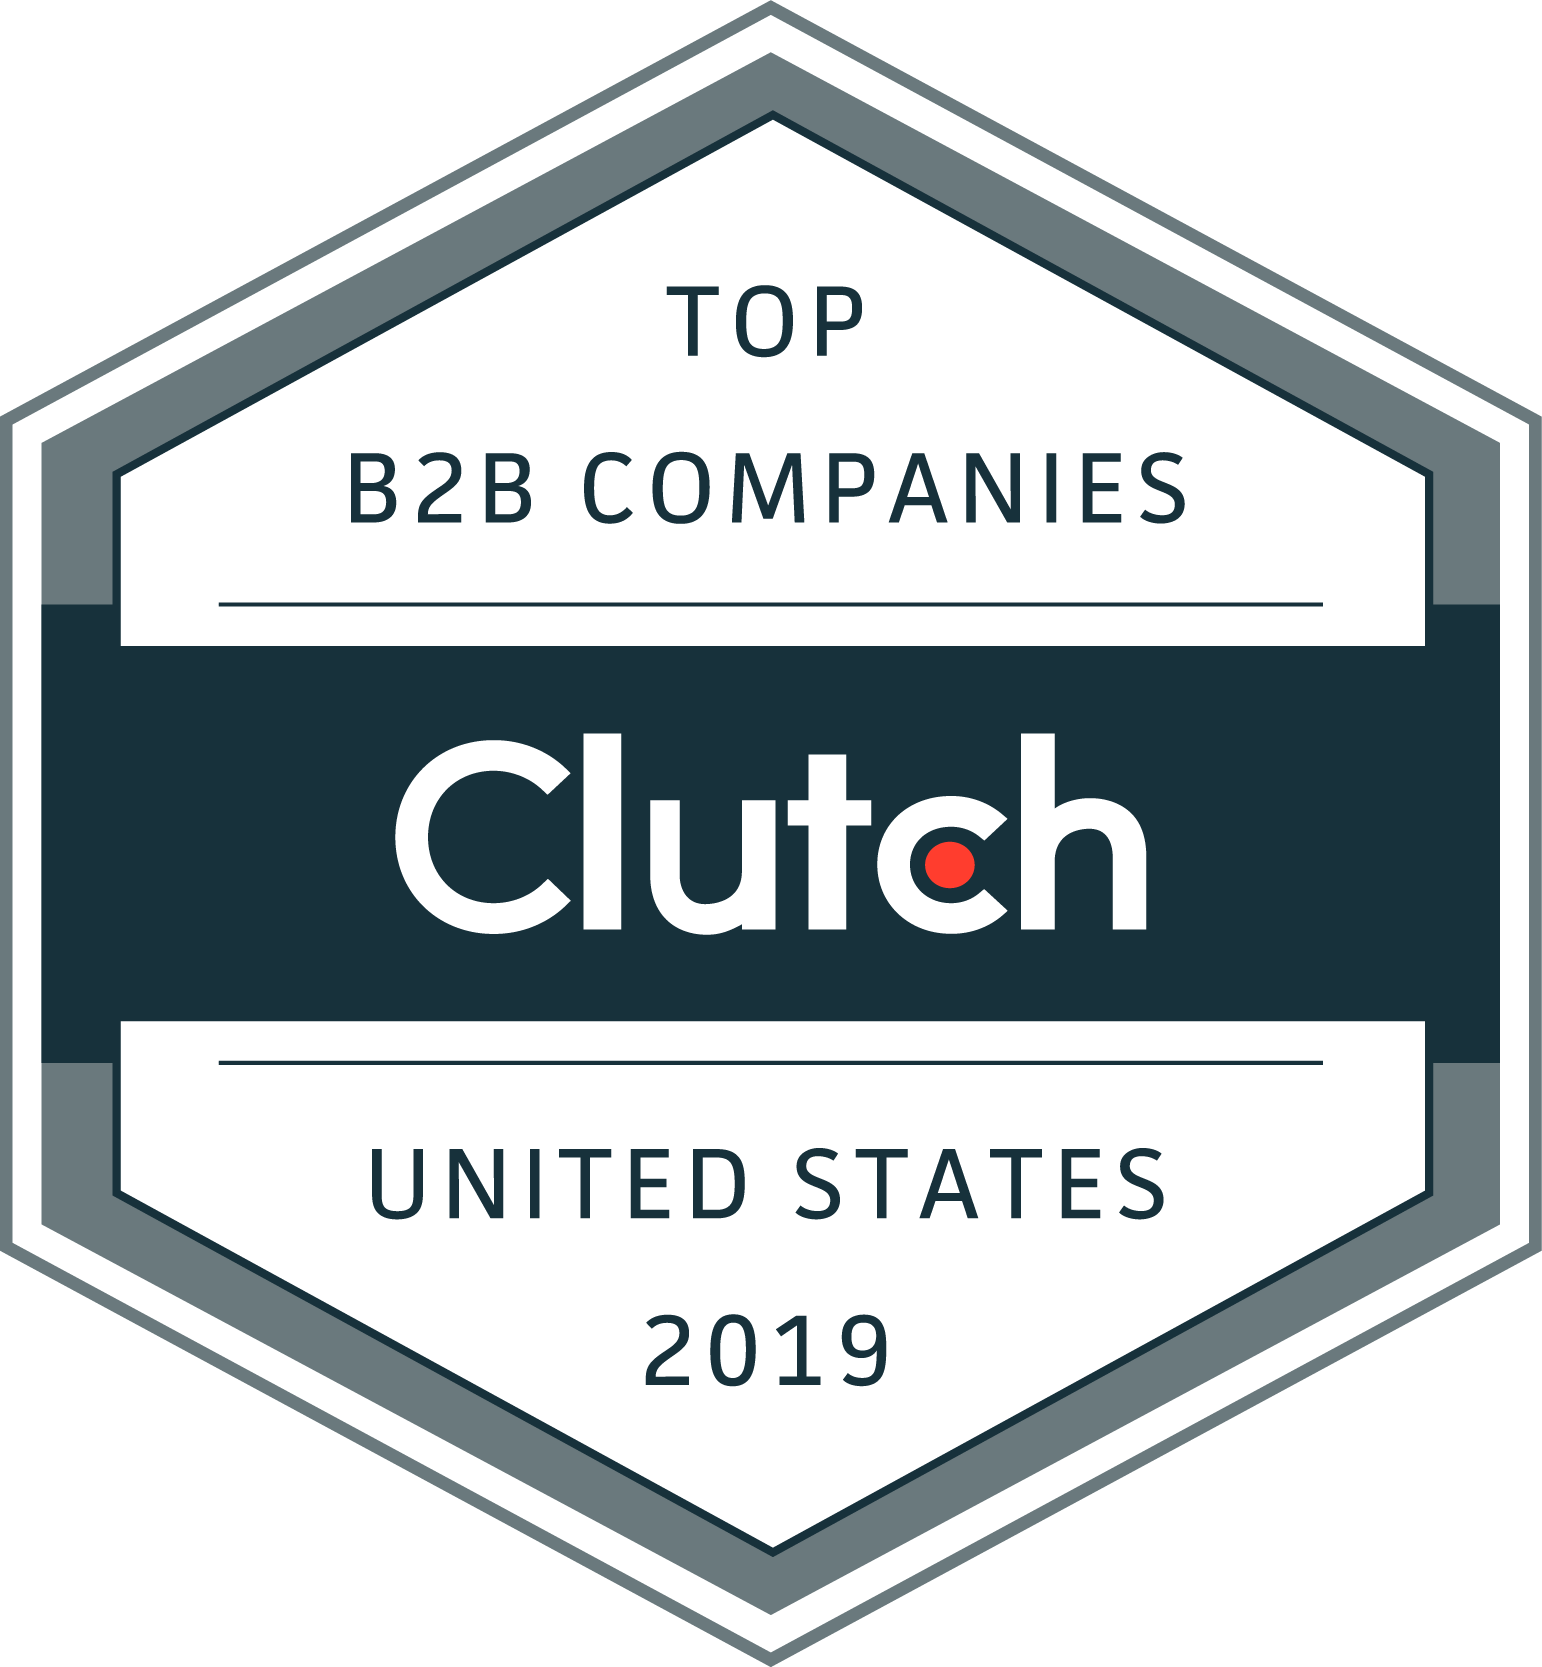 Mr. Technique received 2019 Clutch Award Leading B2B Company in the United States